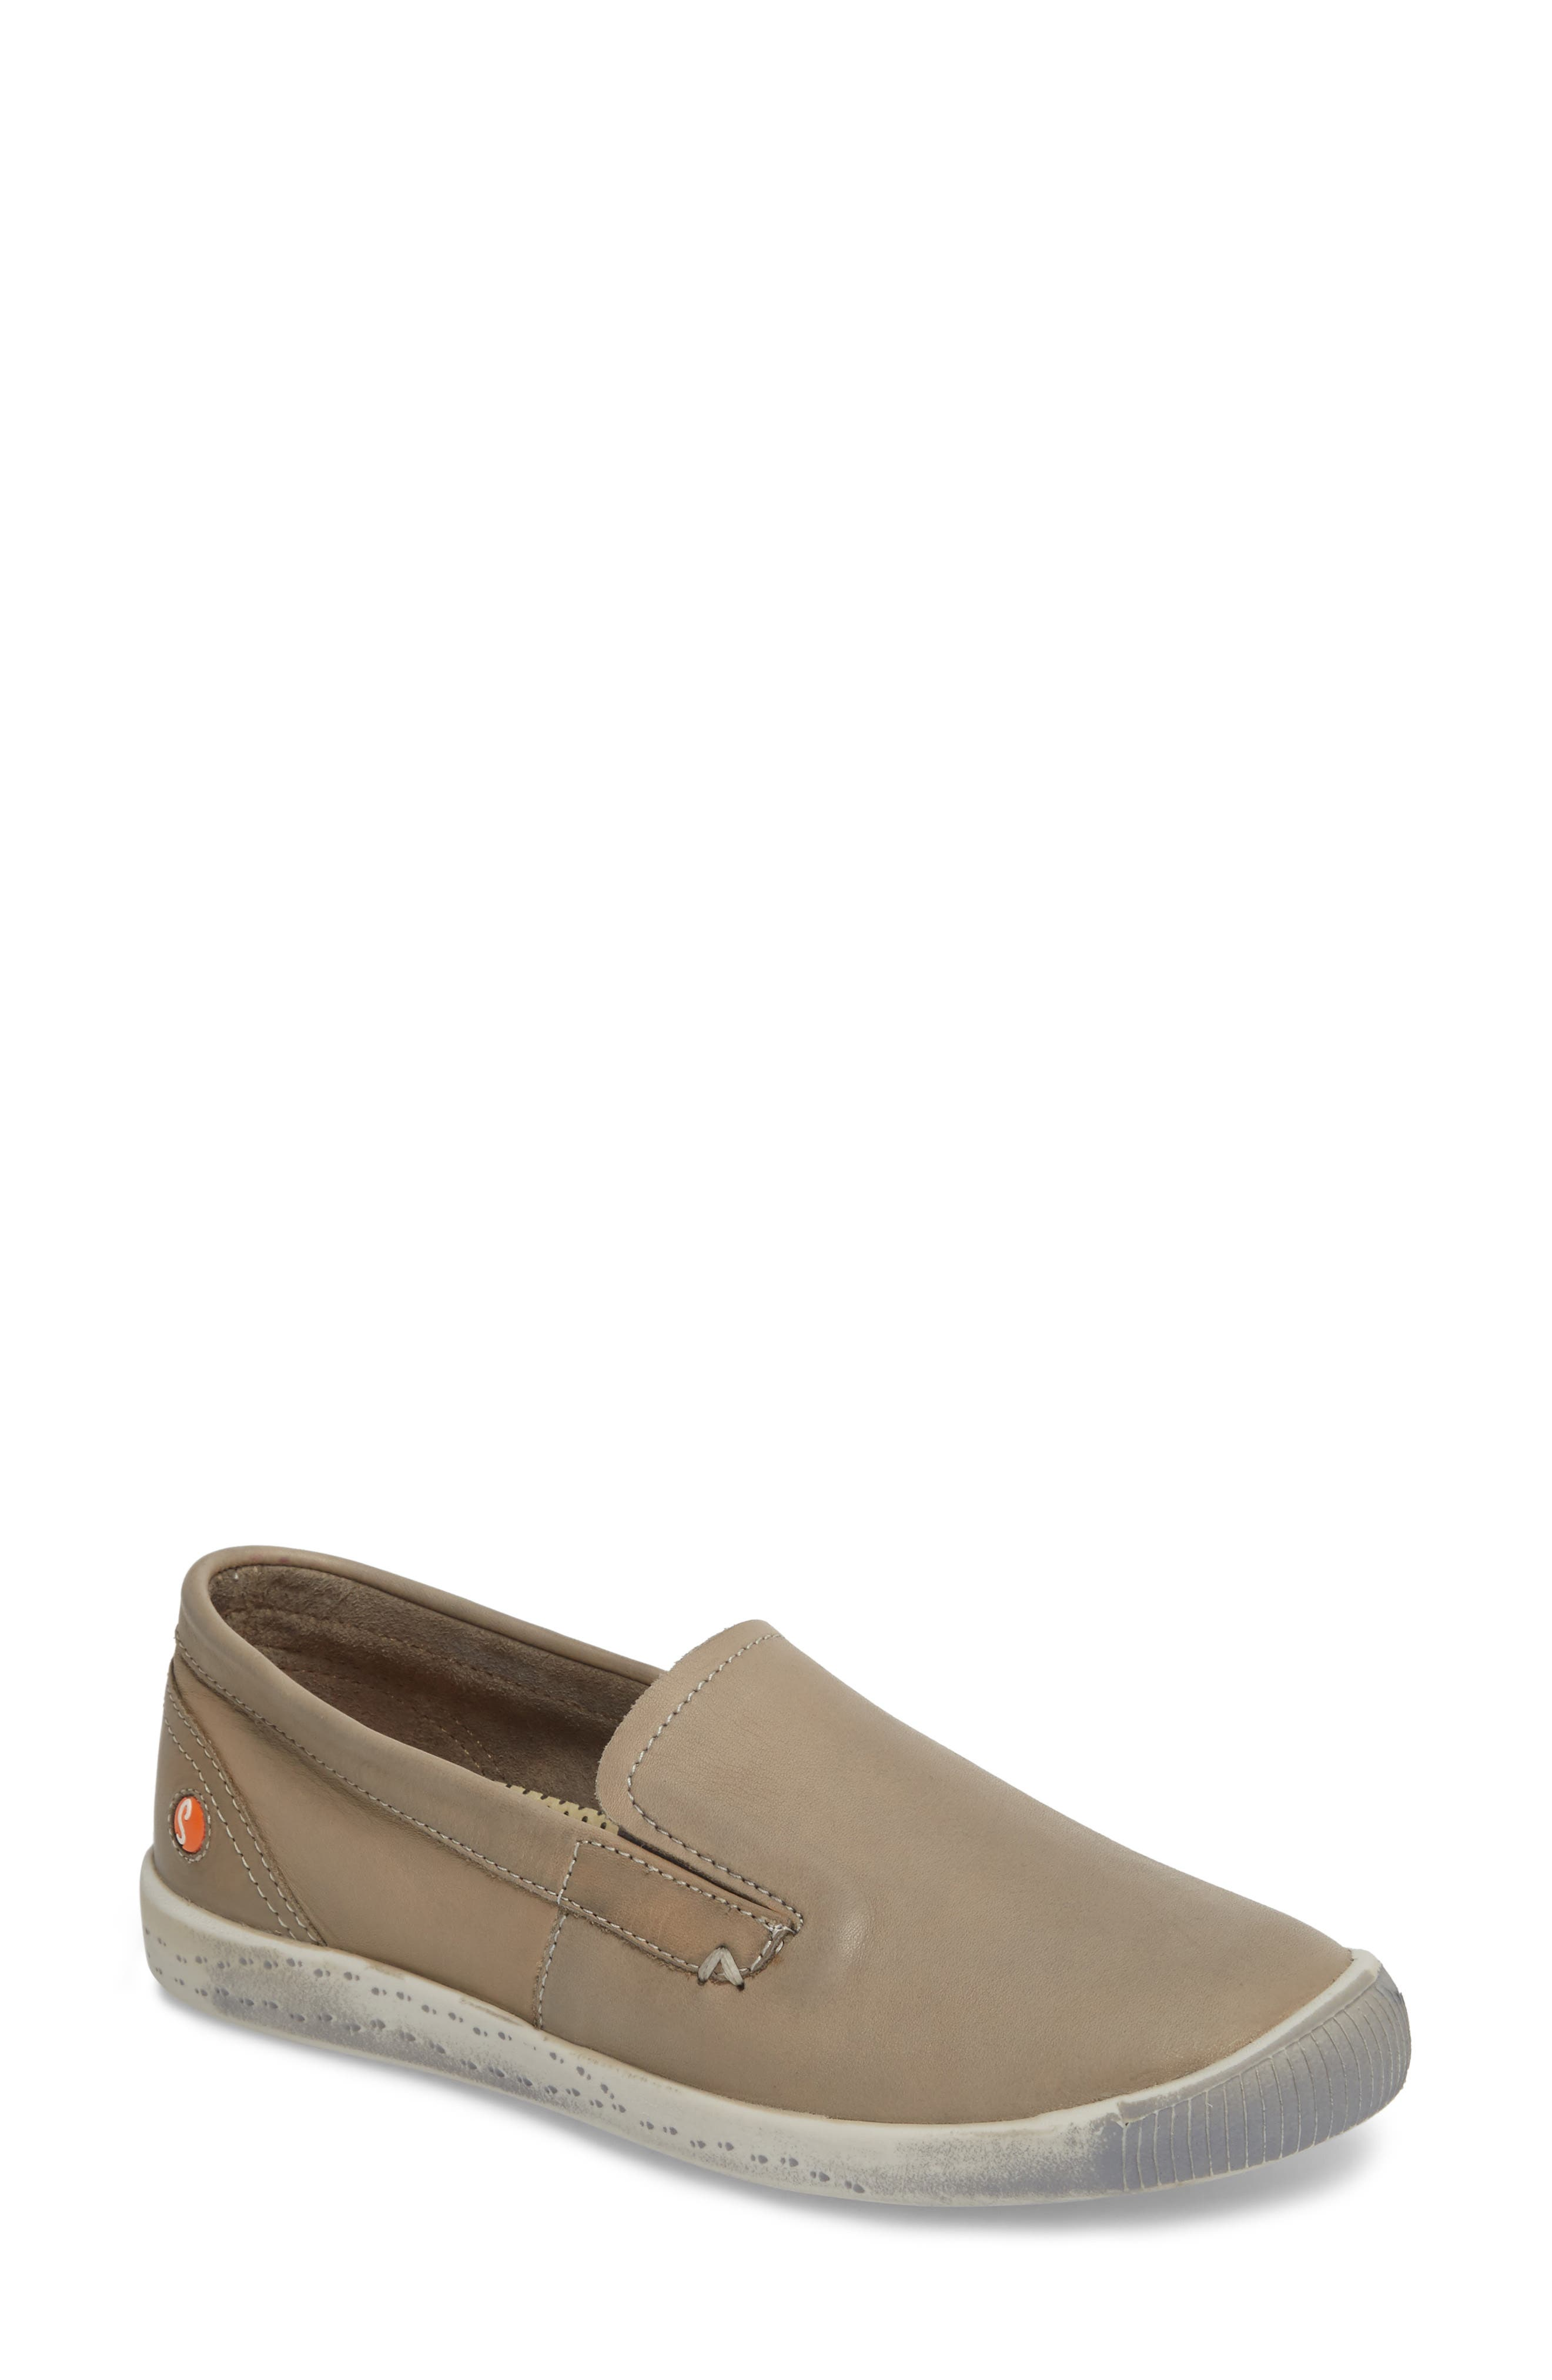 Ita Slip-On Sneaker,                         Main,                         color, Taupe/ Taupe Leather